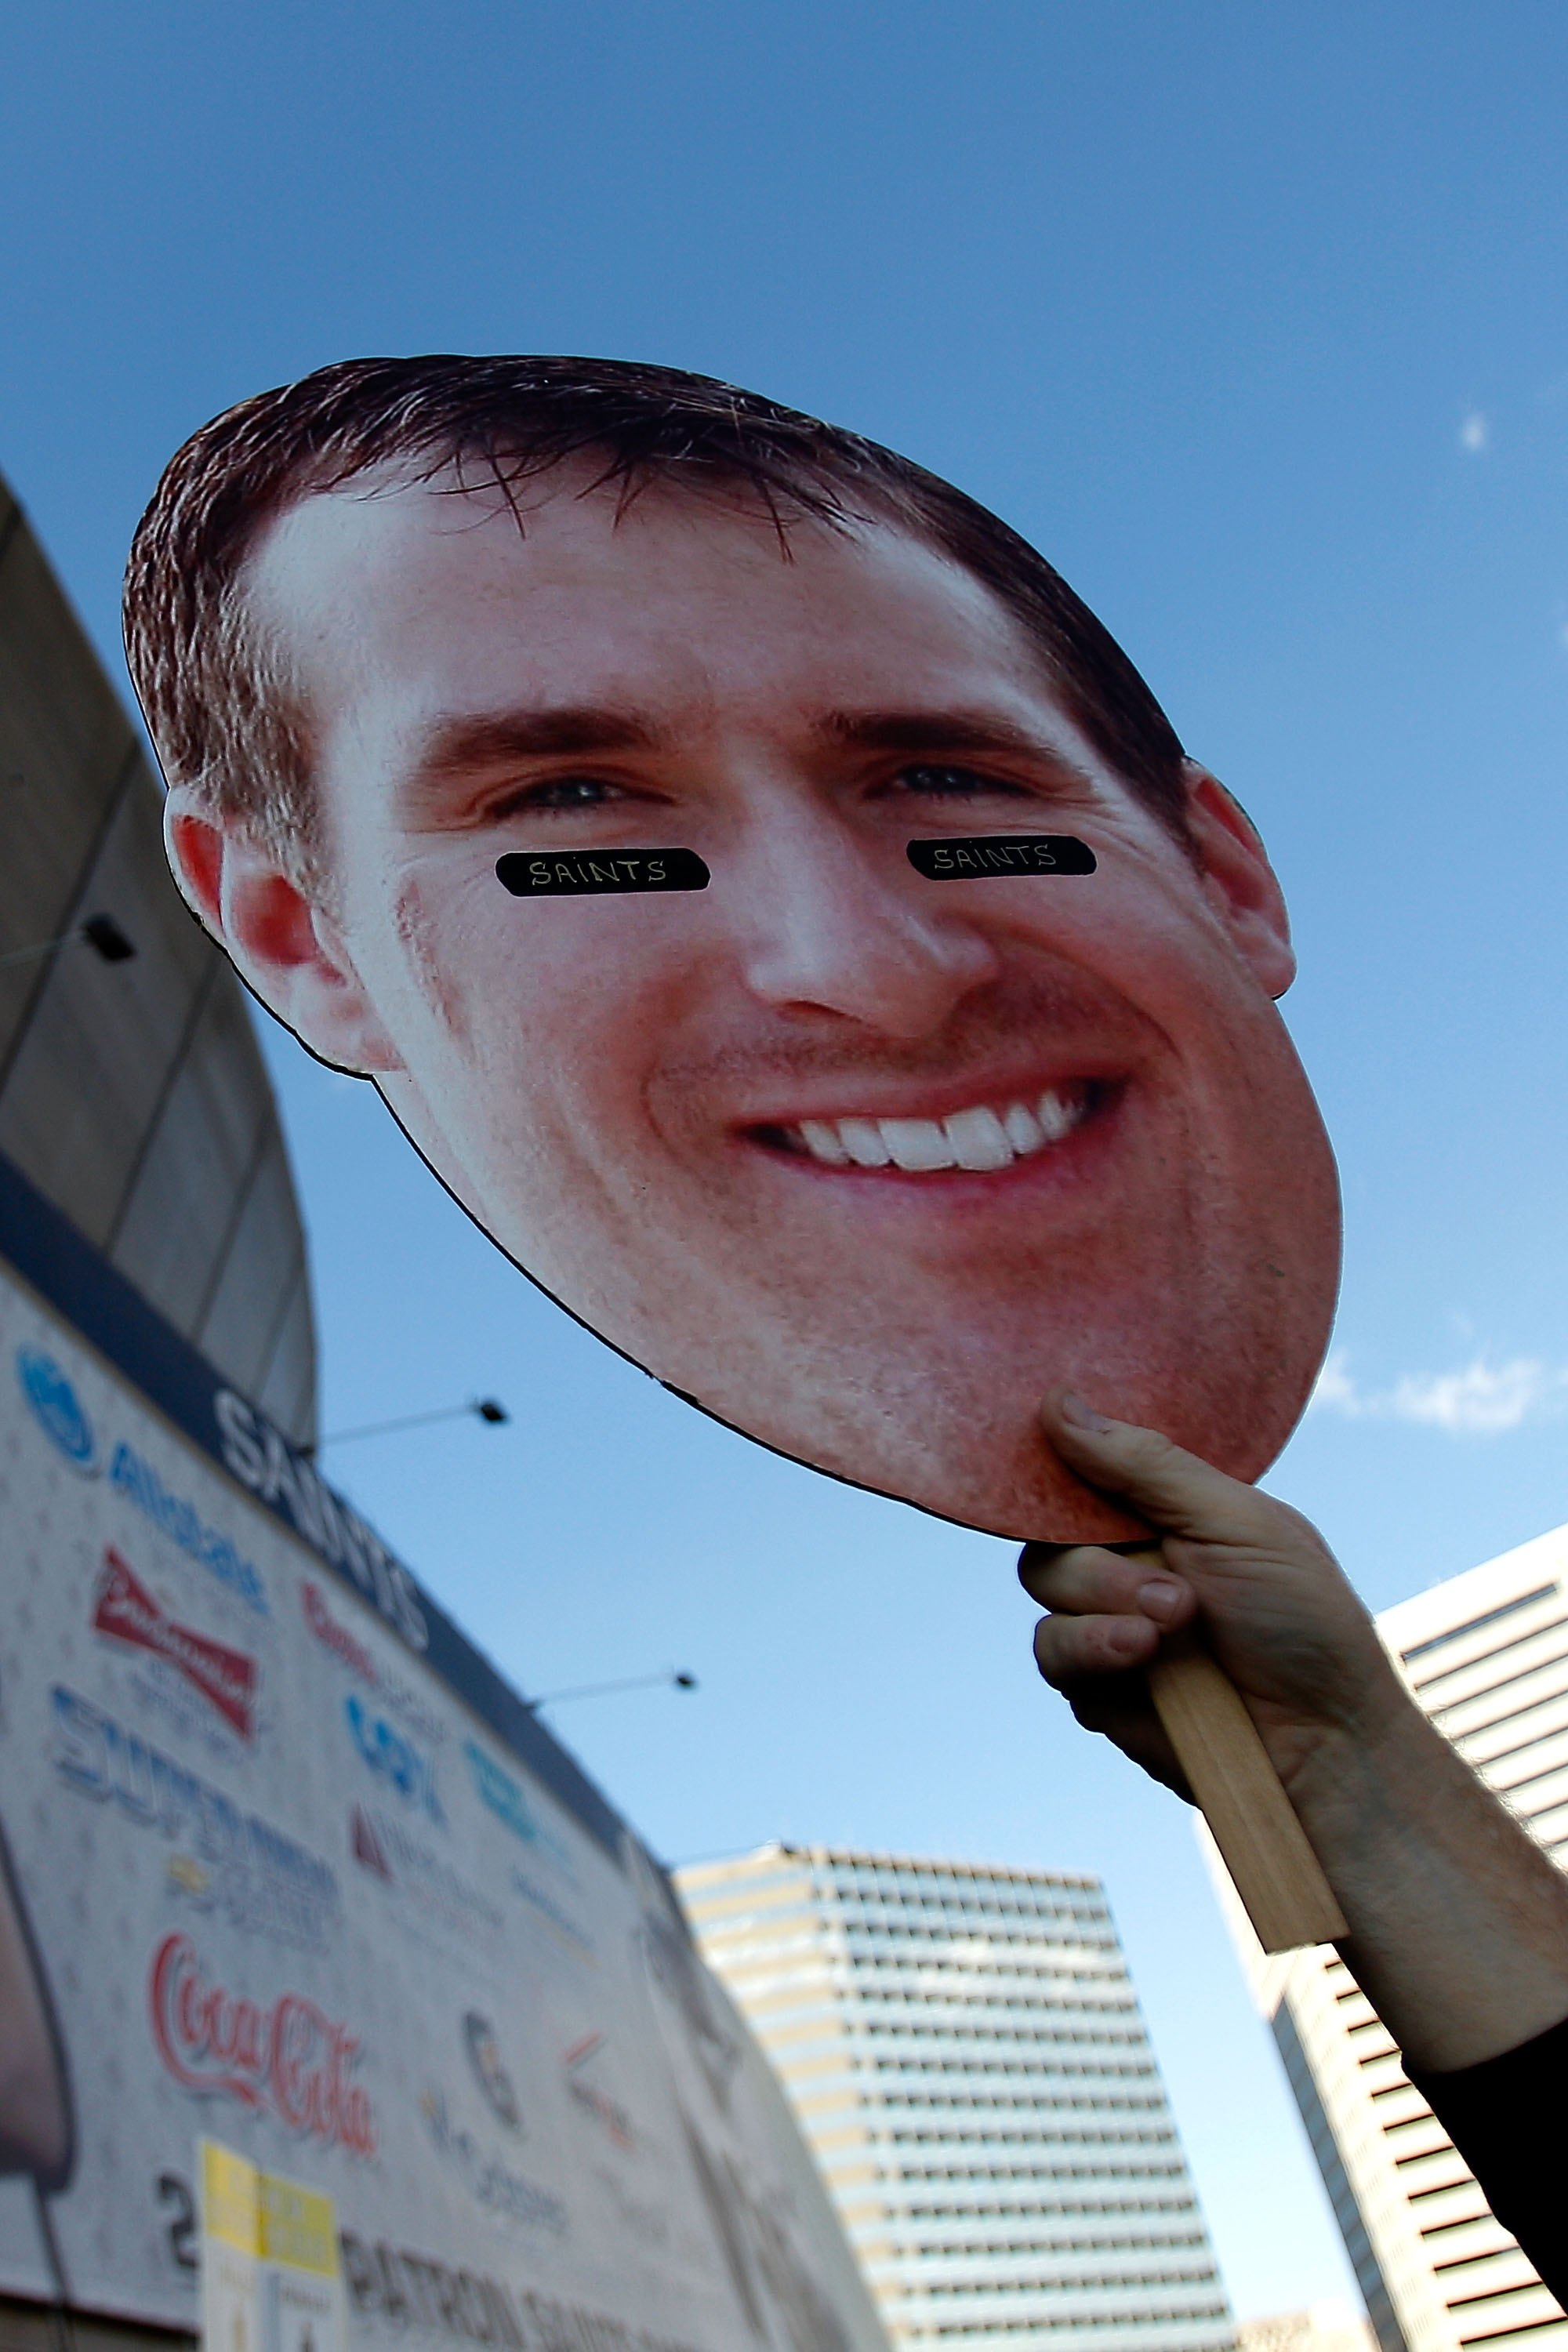 The folk hero status of Drew Brees will continue to grow with another deep playoff run.